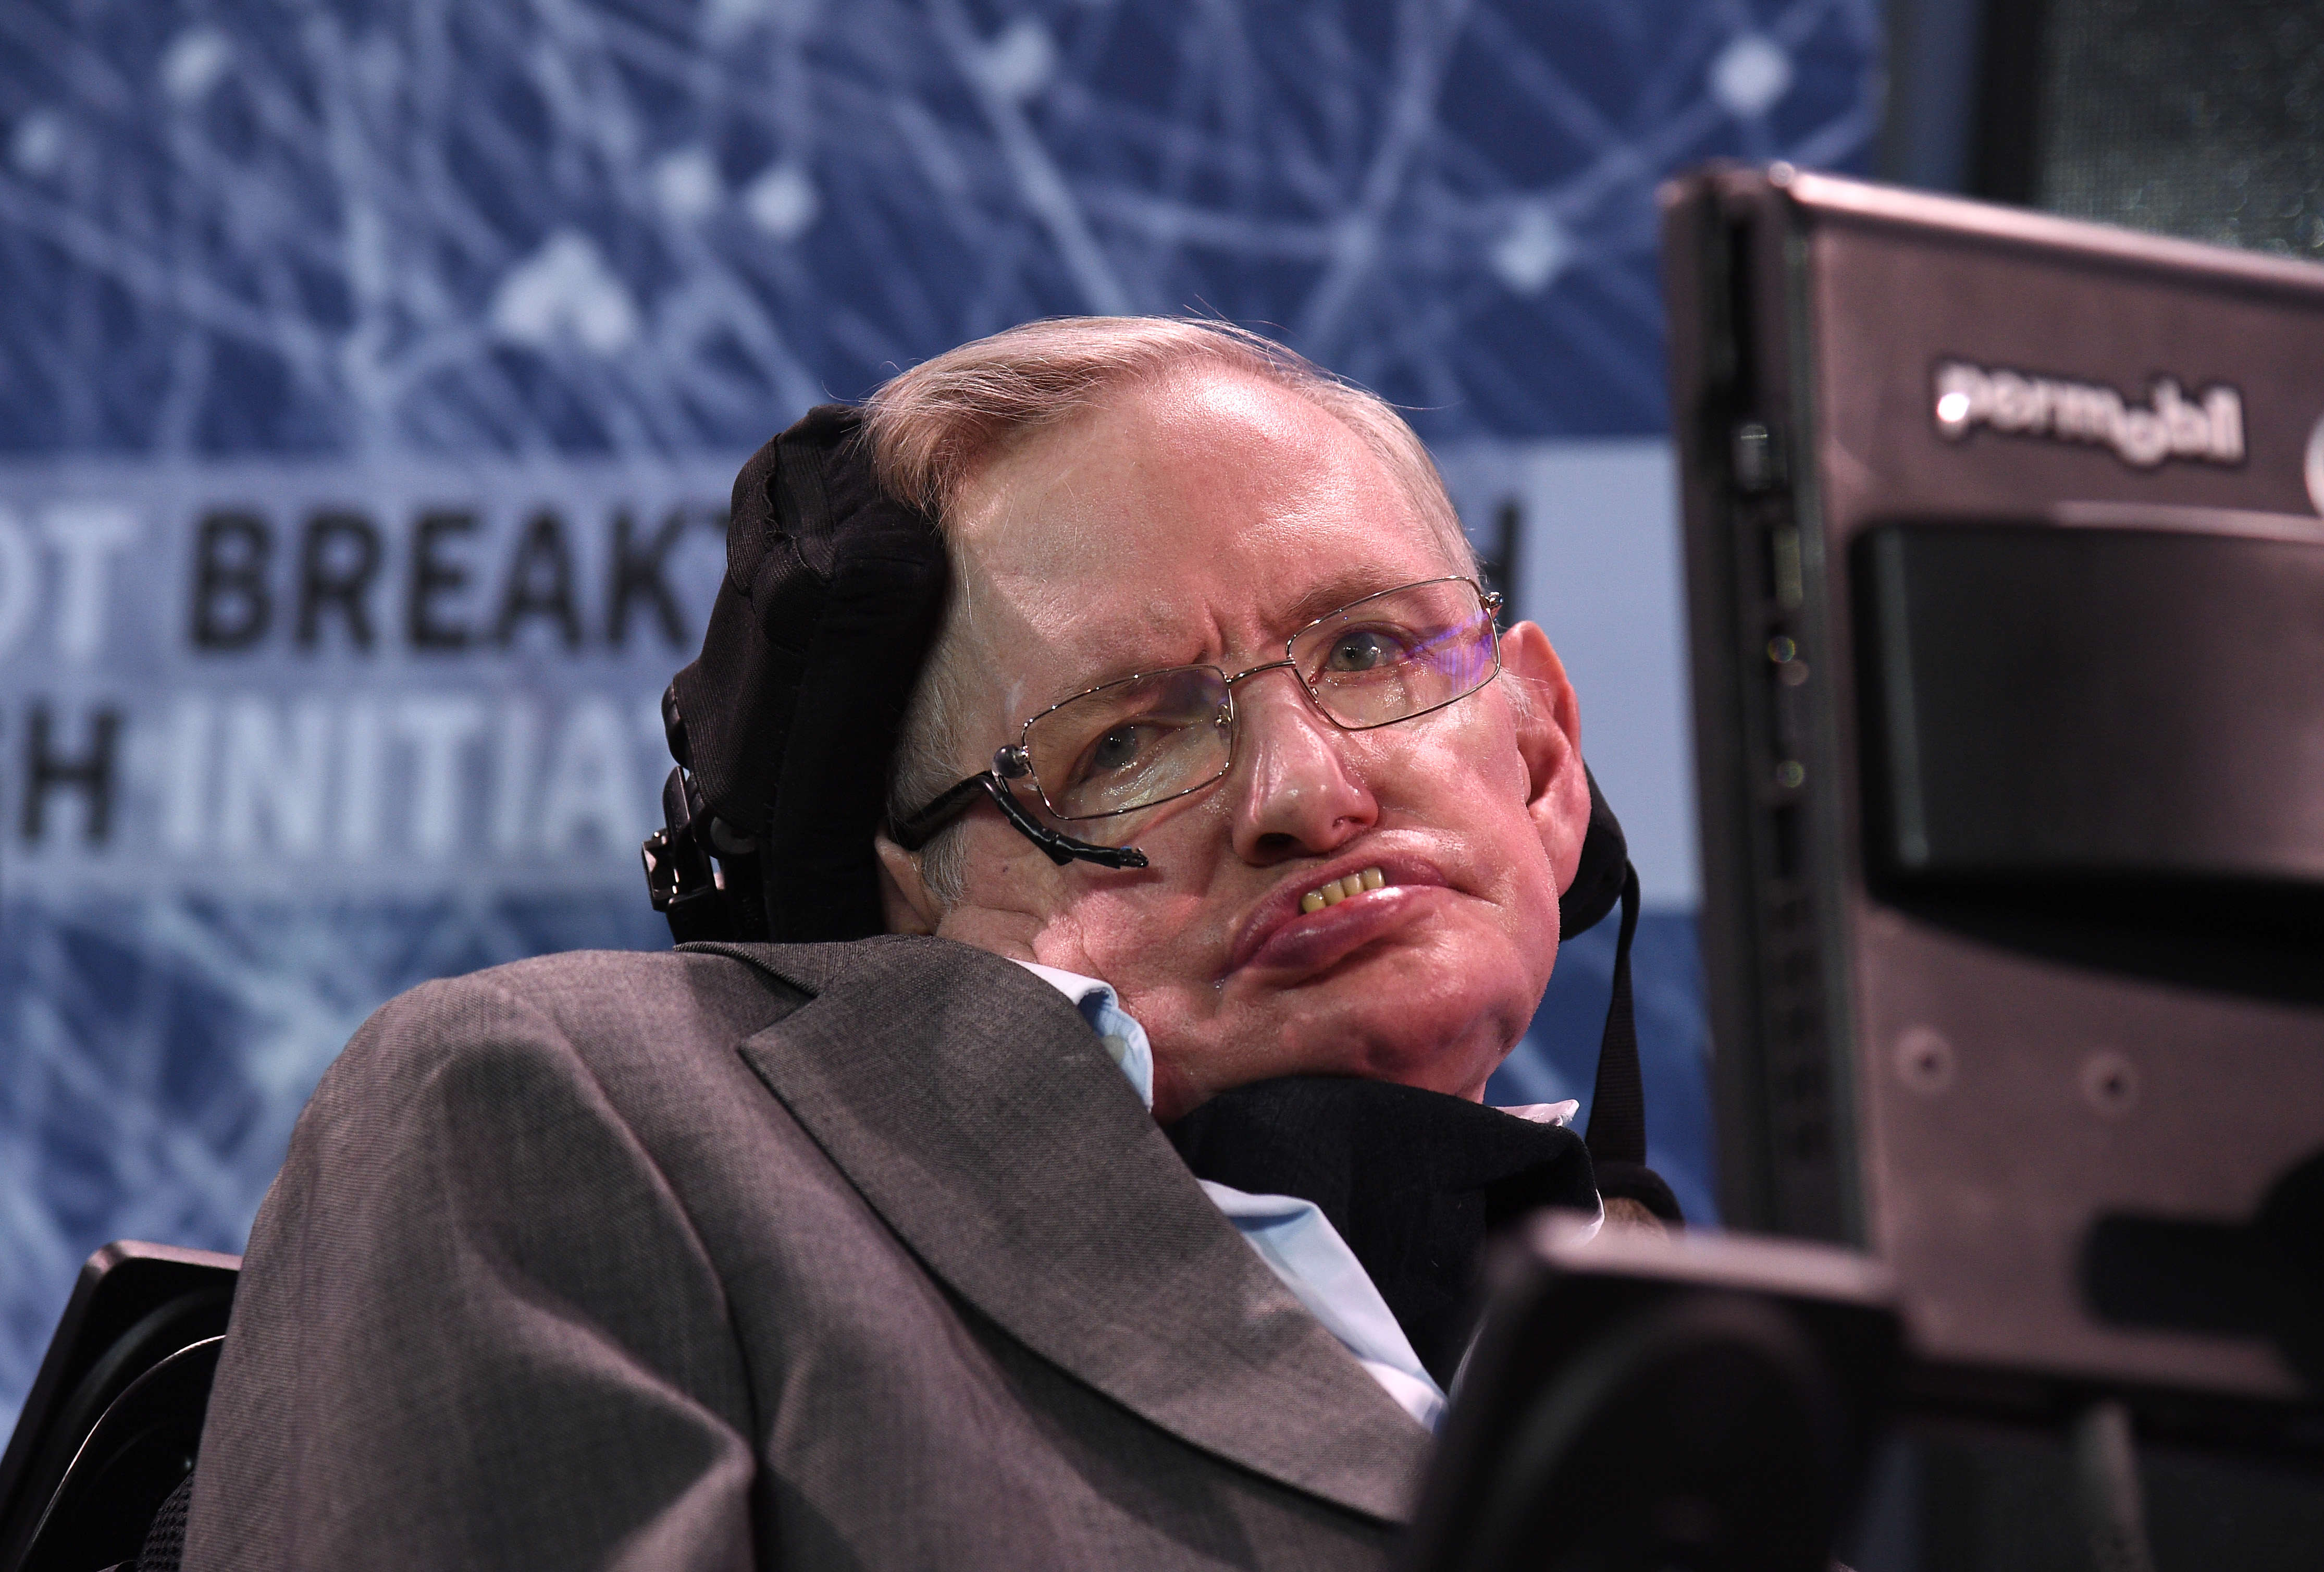 stephen hawking warns brexit attitudes could kill off human race stephen hawking warns brexit attitudes could kill off human race hawking2